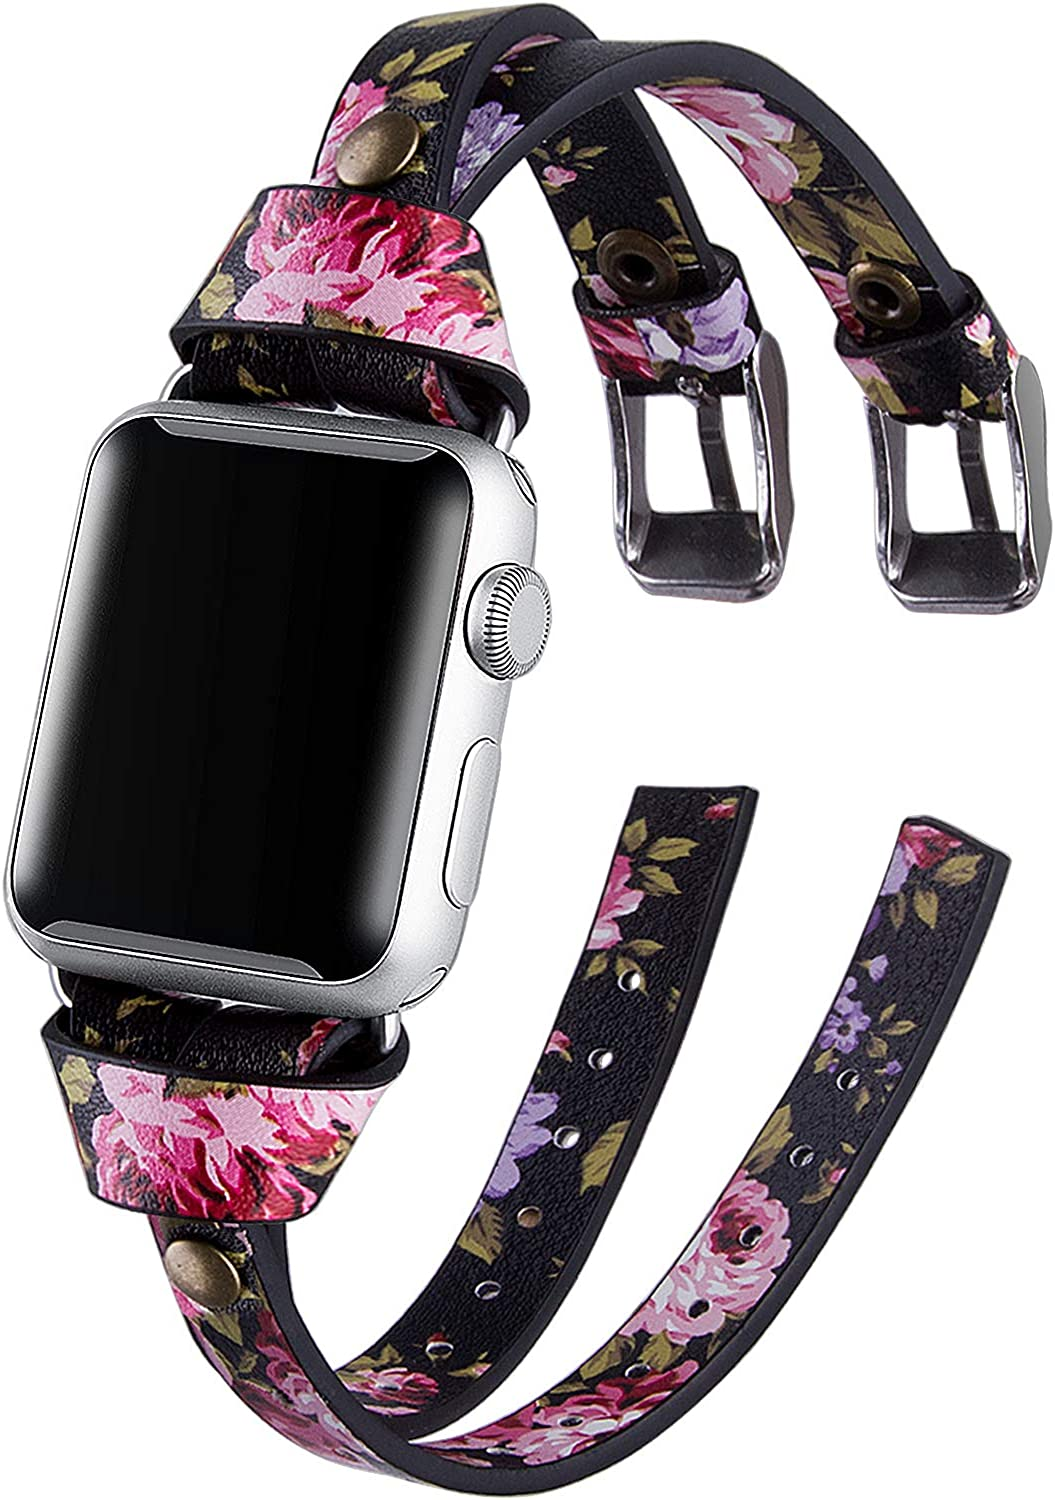 VIQIV Leather Band Compatible with Apple Watch Series 5 4 3 38mm 40mm 44mm 42mm Bands for Women iWatch Unique Wristbands Bracelet Strap Double-Breasted Rose Gold